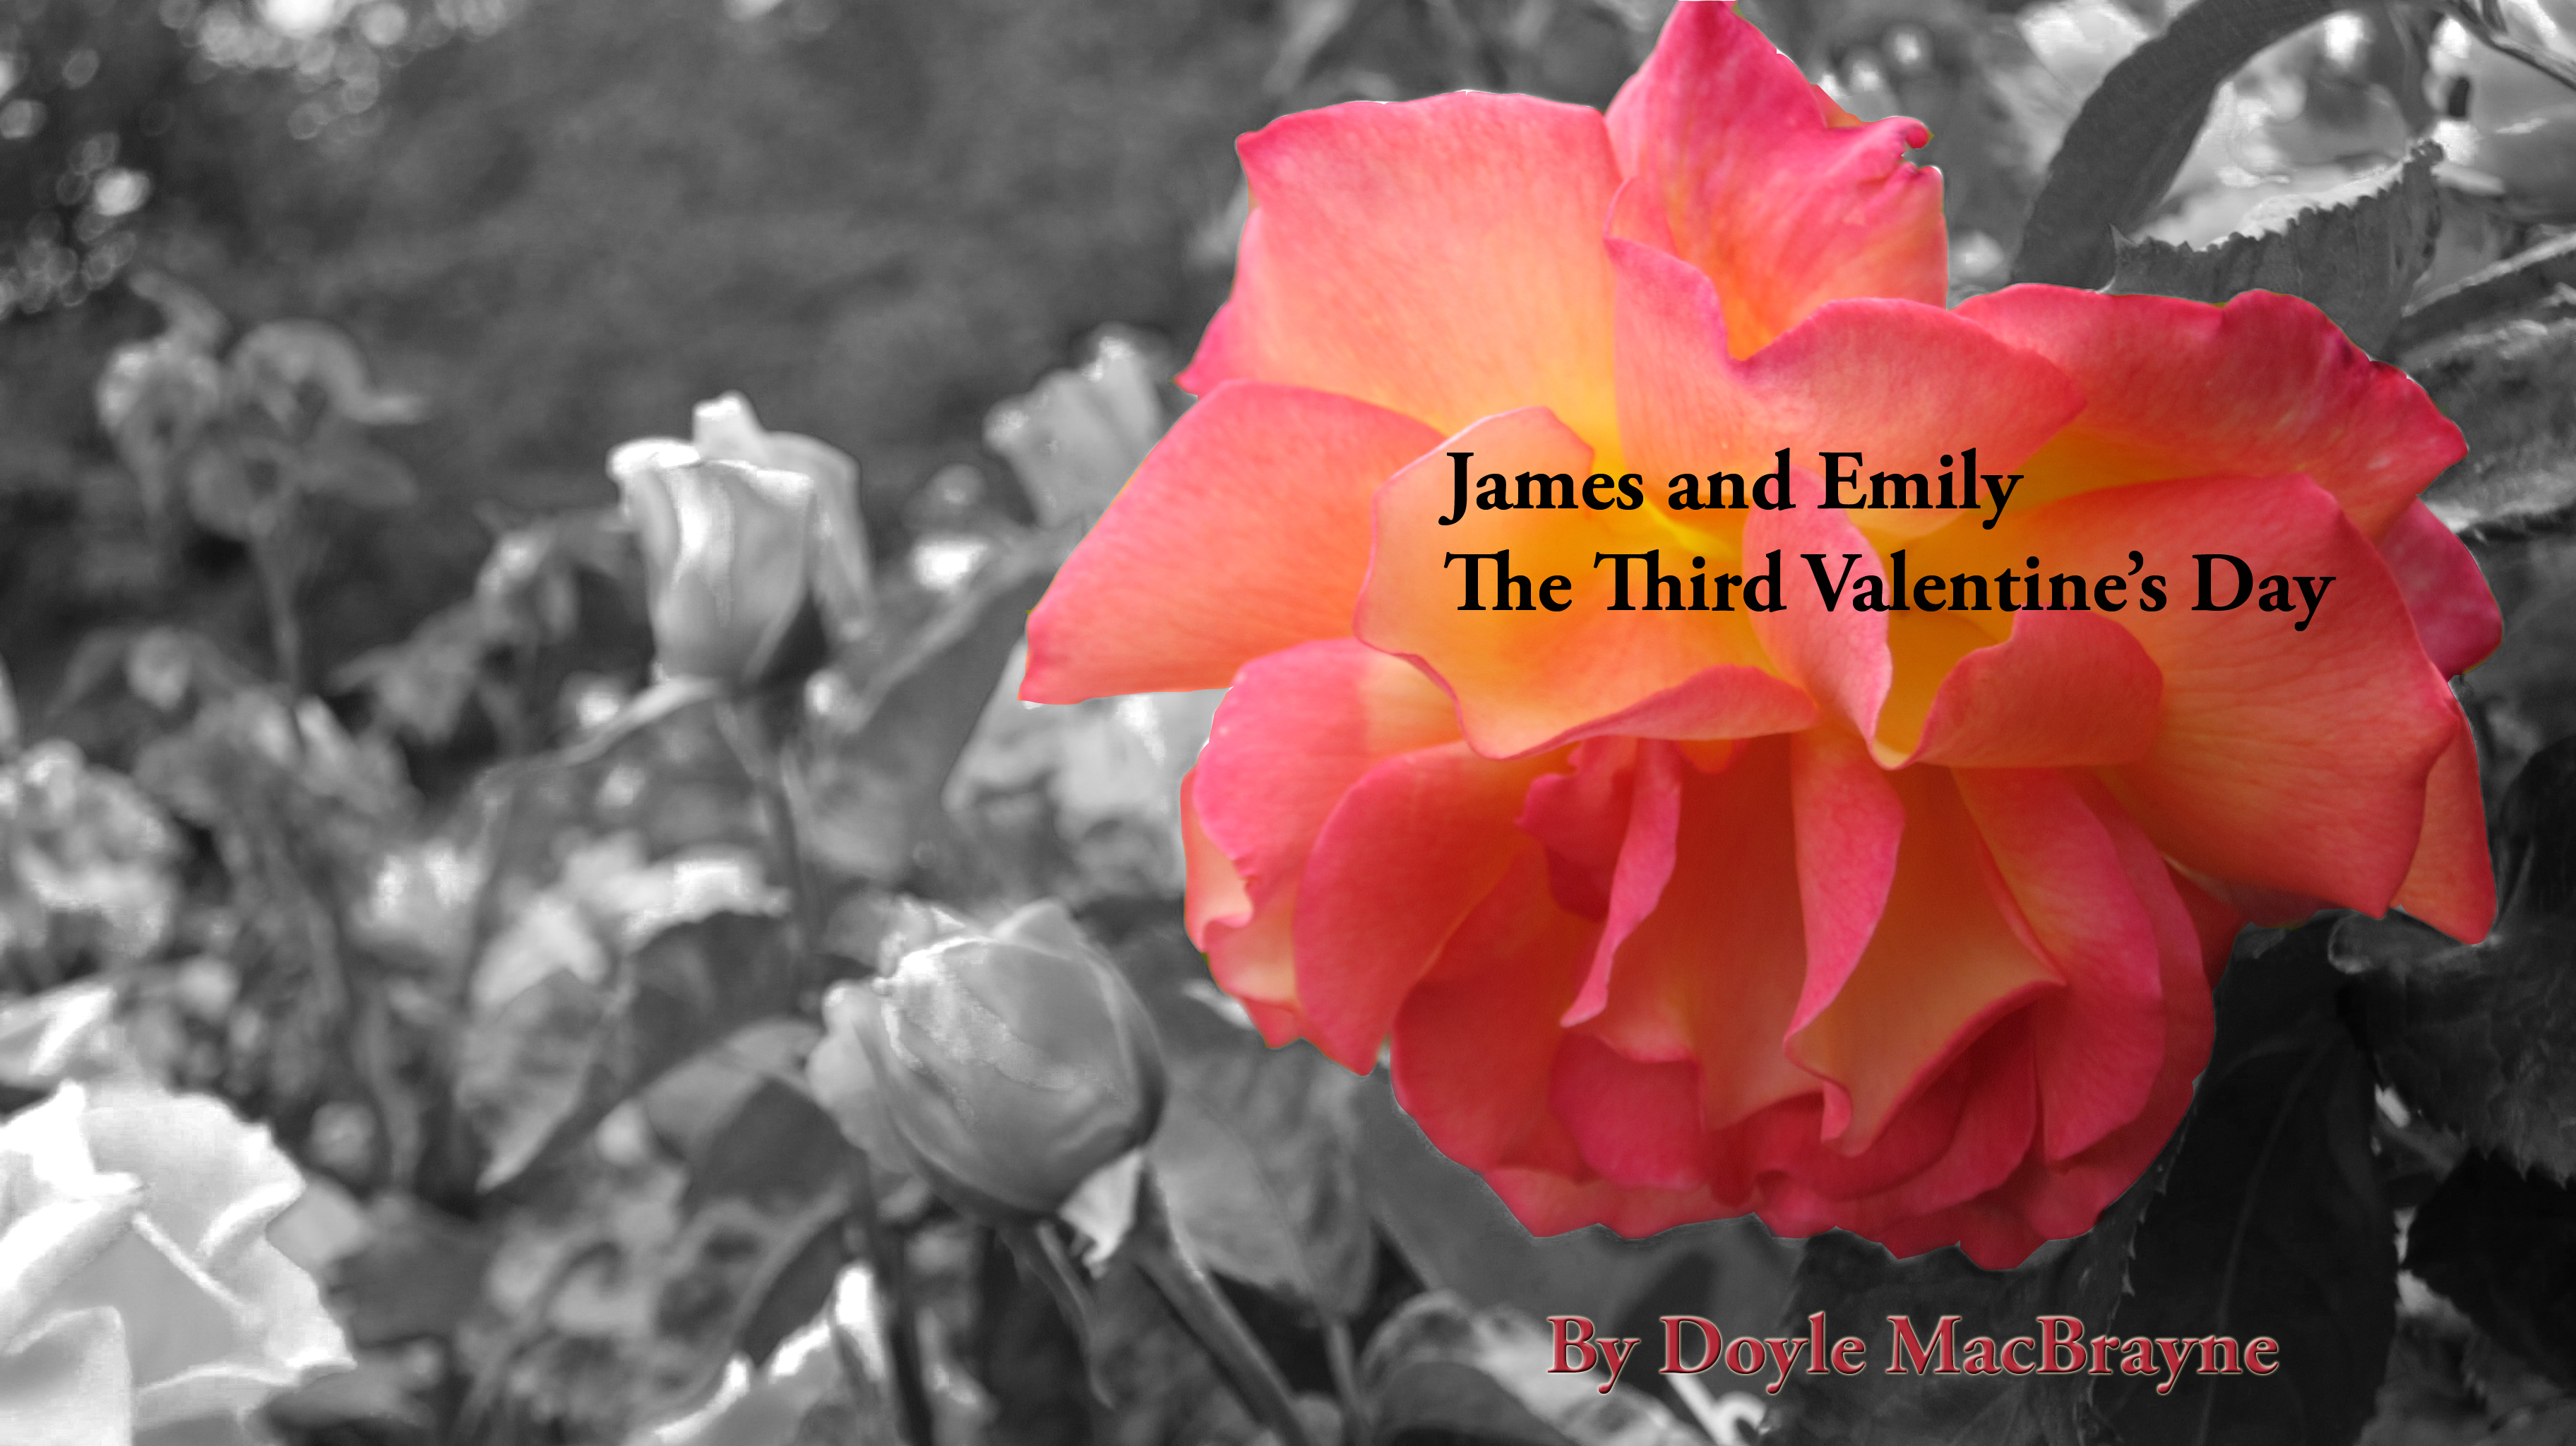 New Cover - New Book  The Third Valentine's Day  - James and Emily's Story